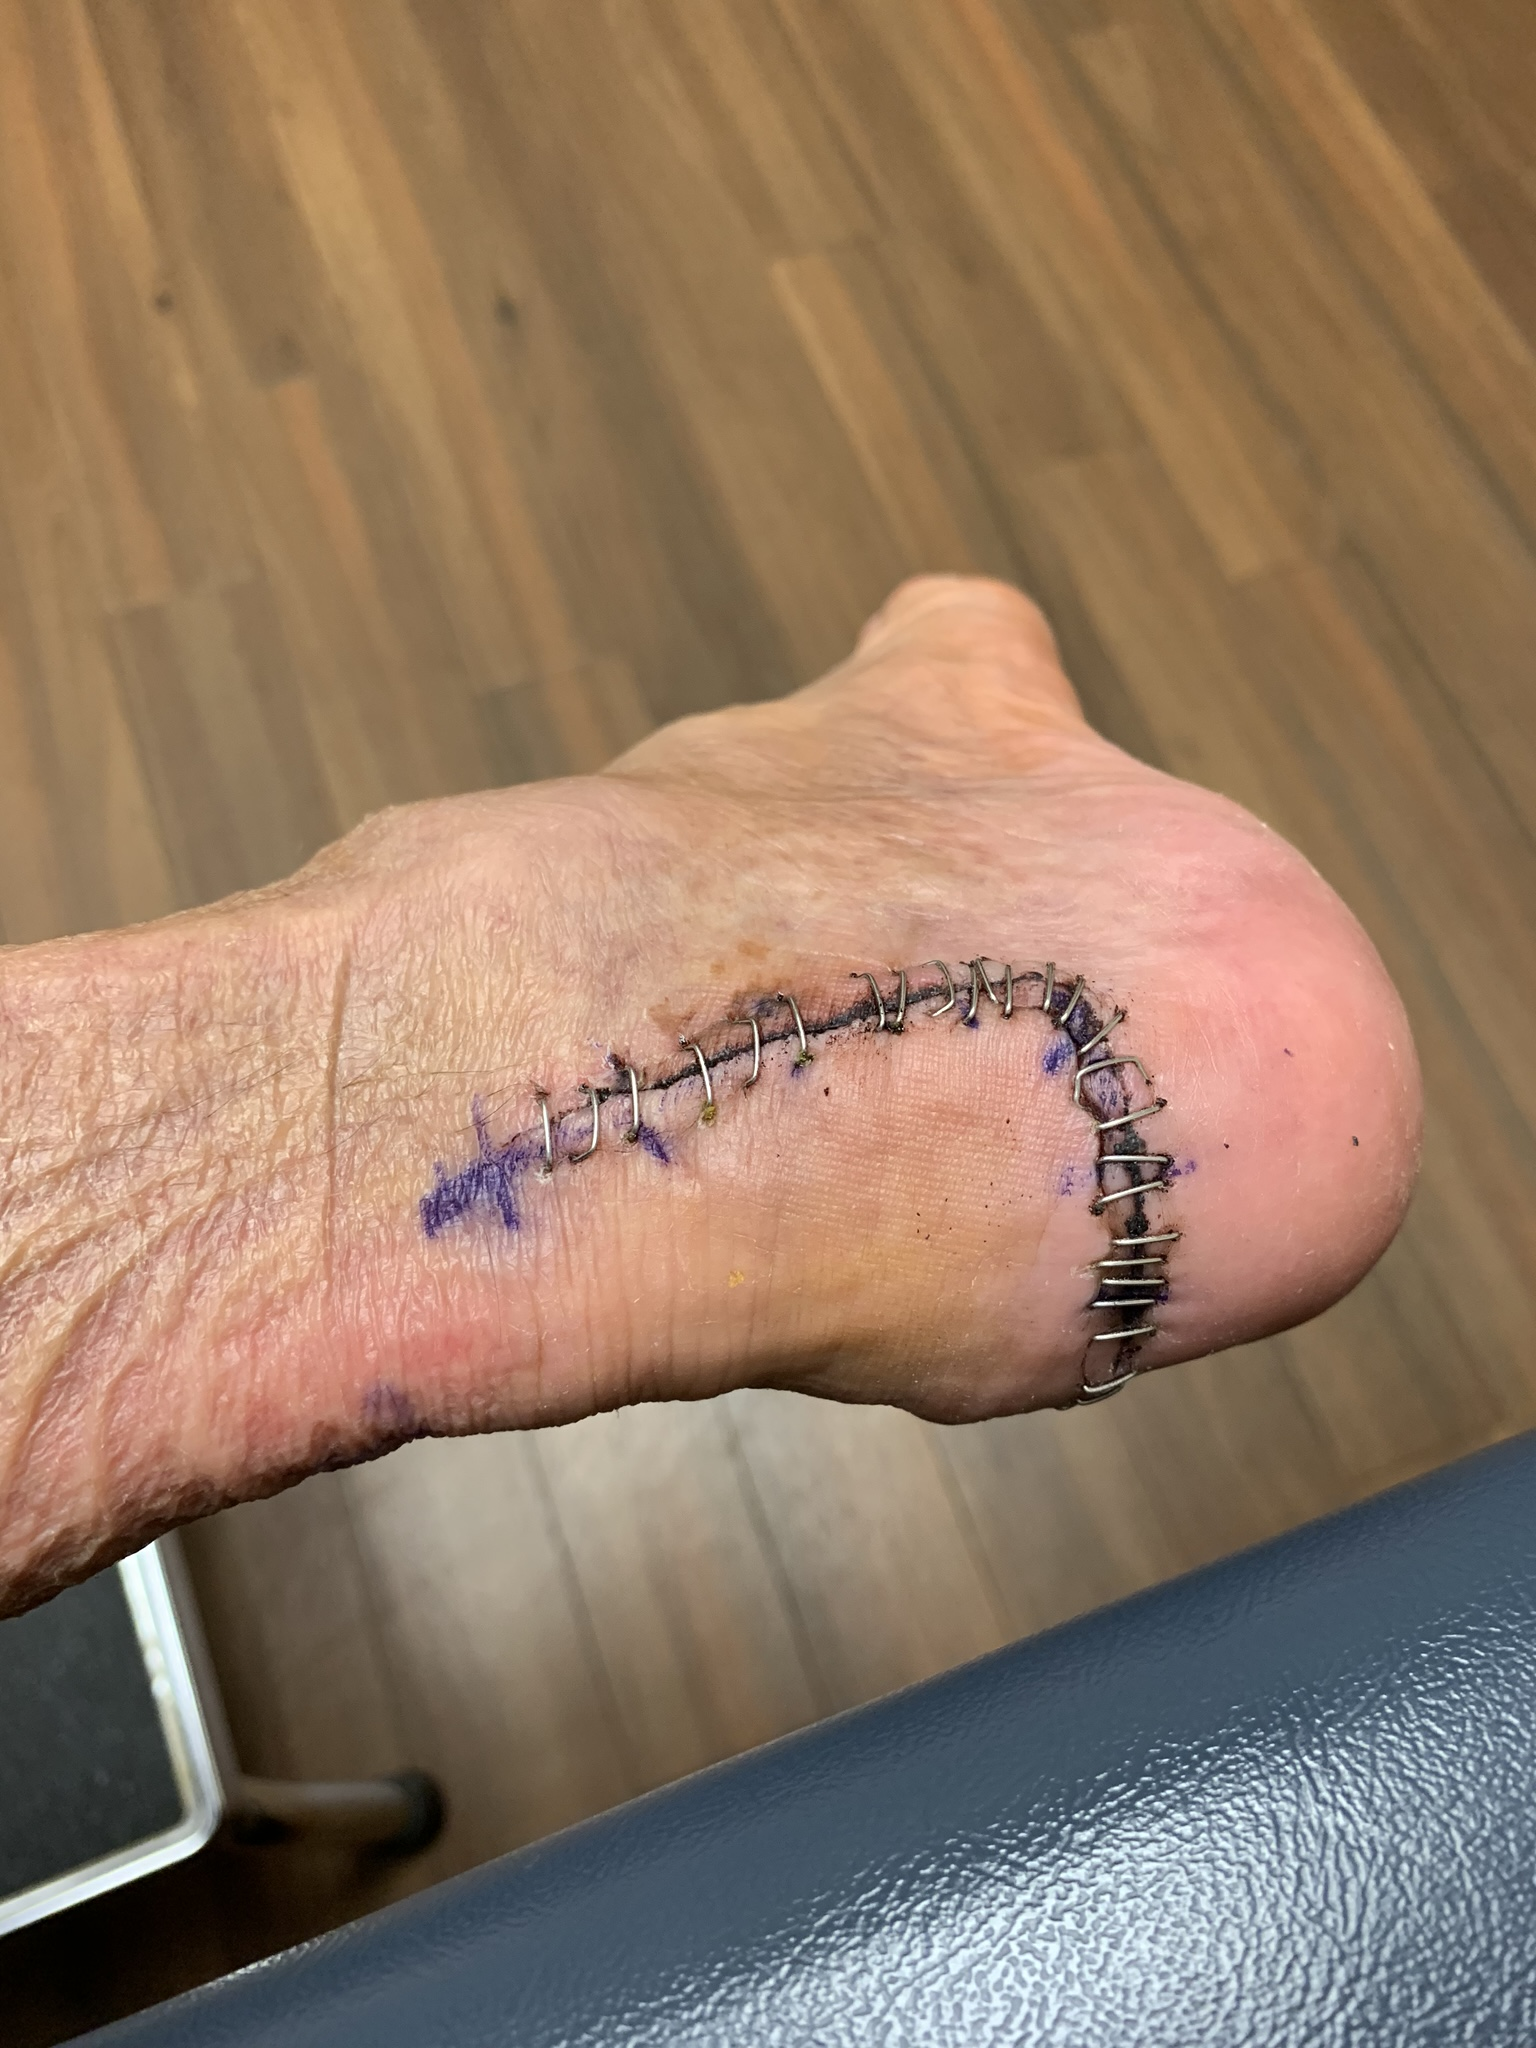 Back of foot before staples were removed